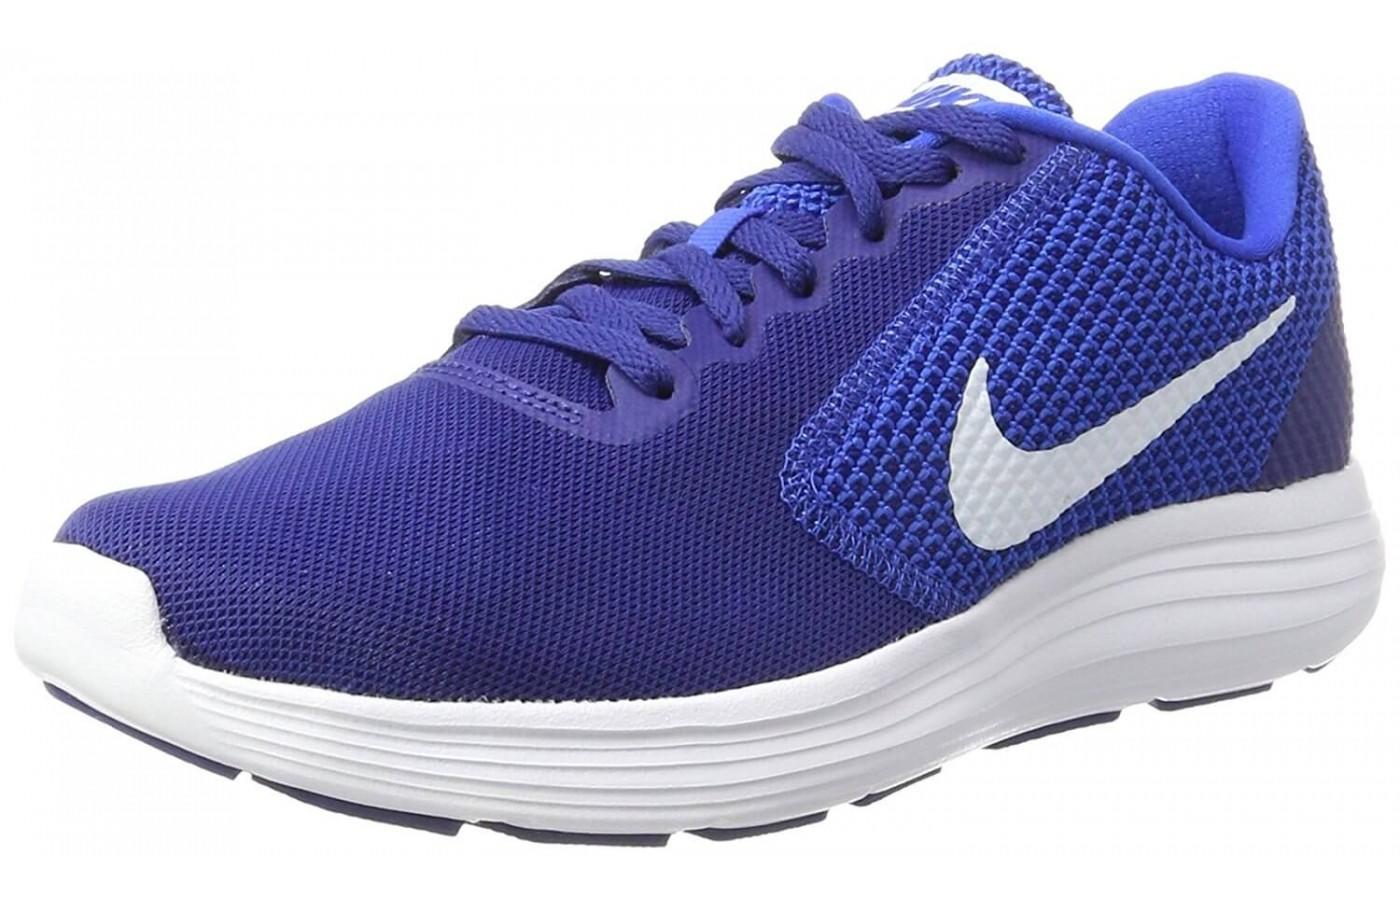 a20037e248c The Nike Revolution 3 features Phylon midsole cushioning ...